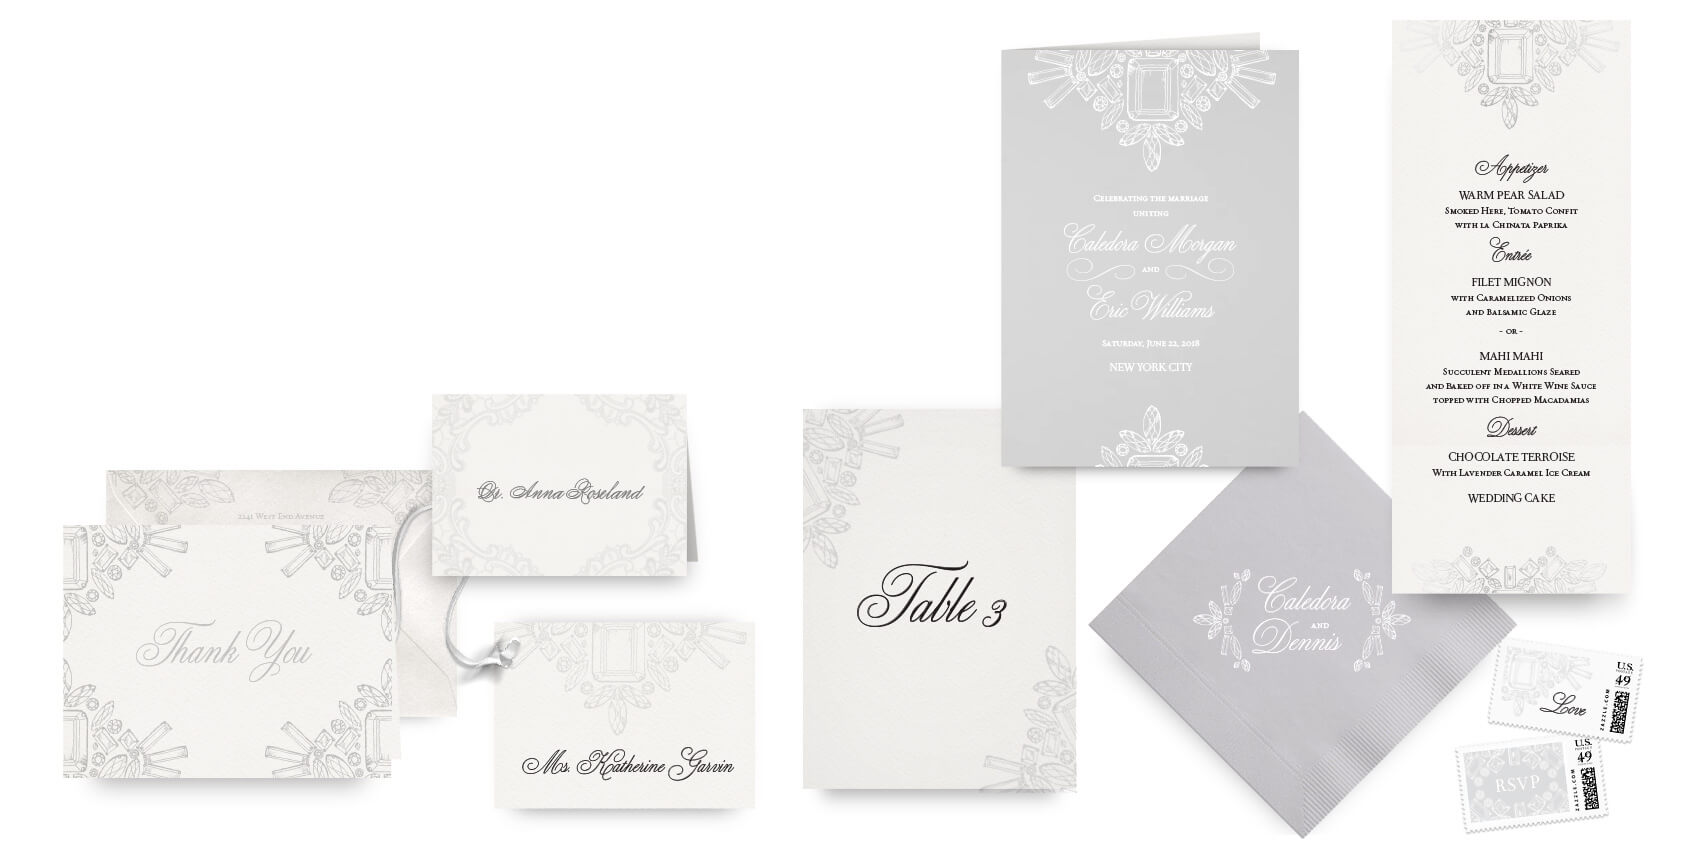 Diamond and crystal menus, programs and wedding accessories